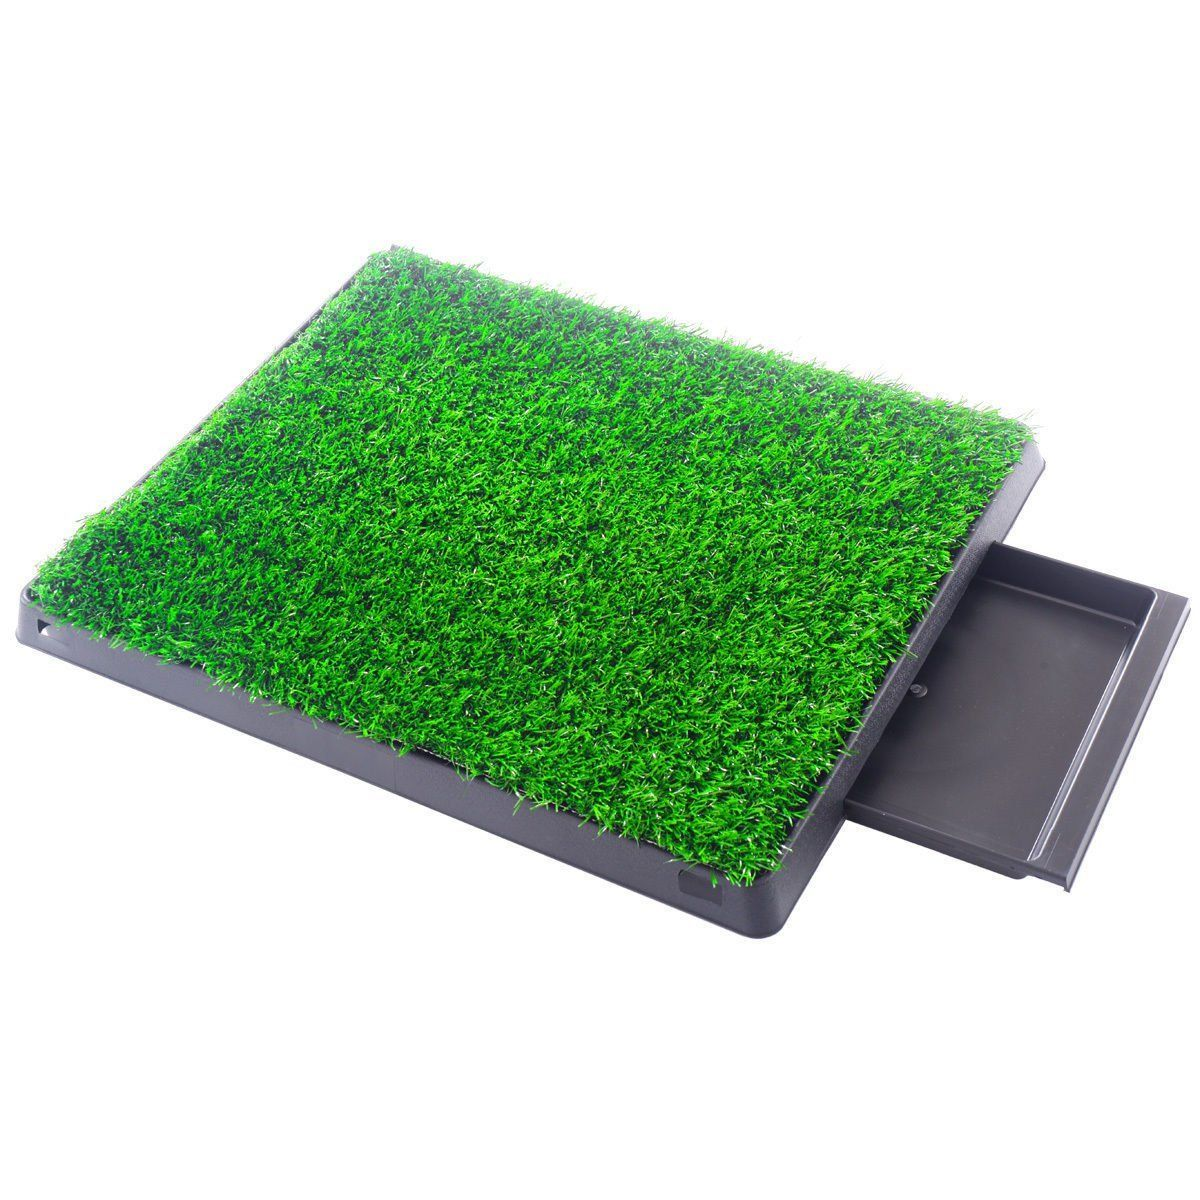 Pet toilet training grass pads indoor puppy dog pet potty training